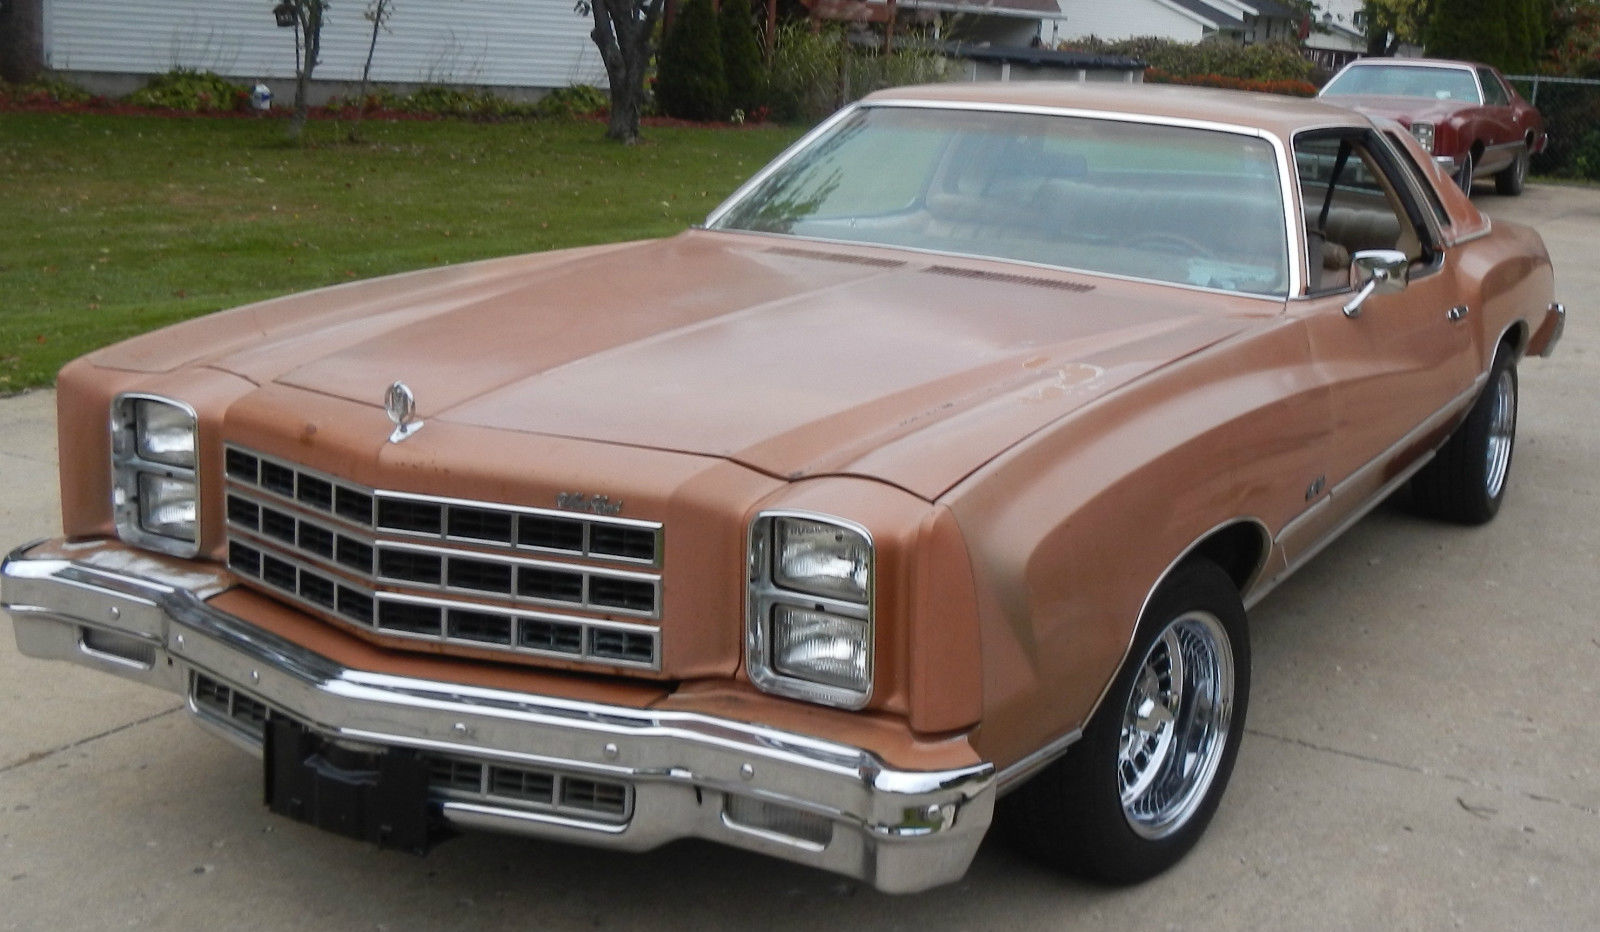 Used Chevrolet Monte Carlo Cars For Sale In New Jersey